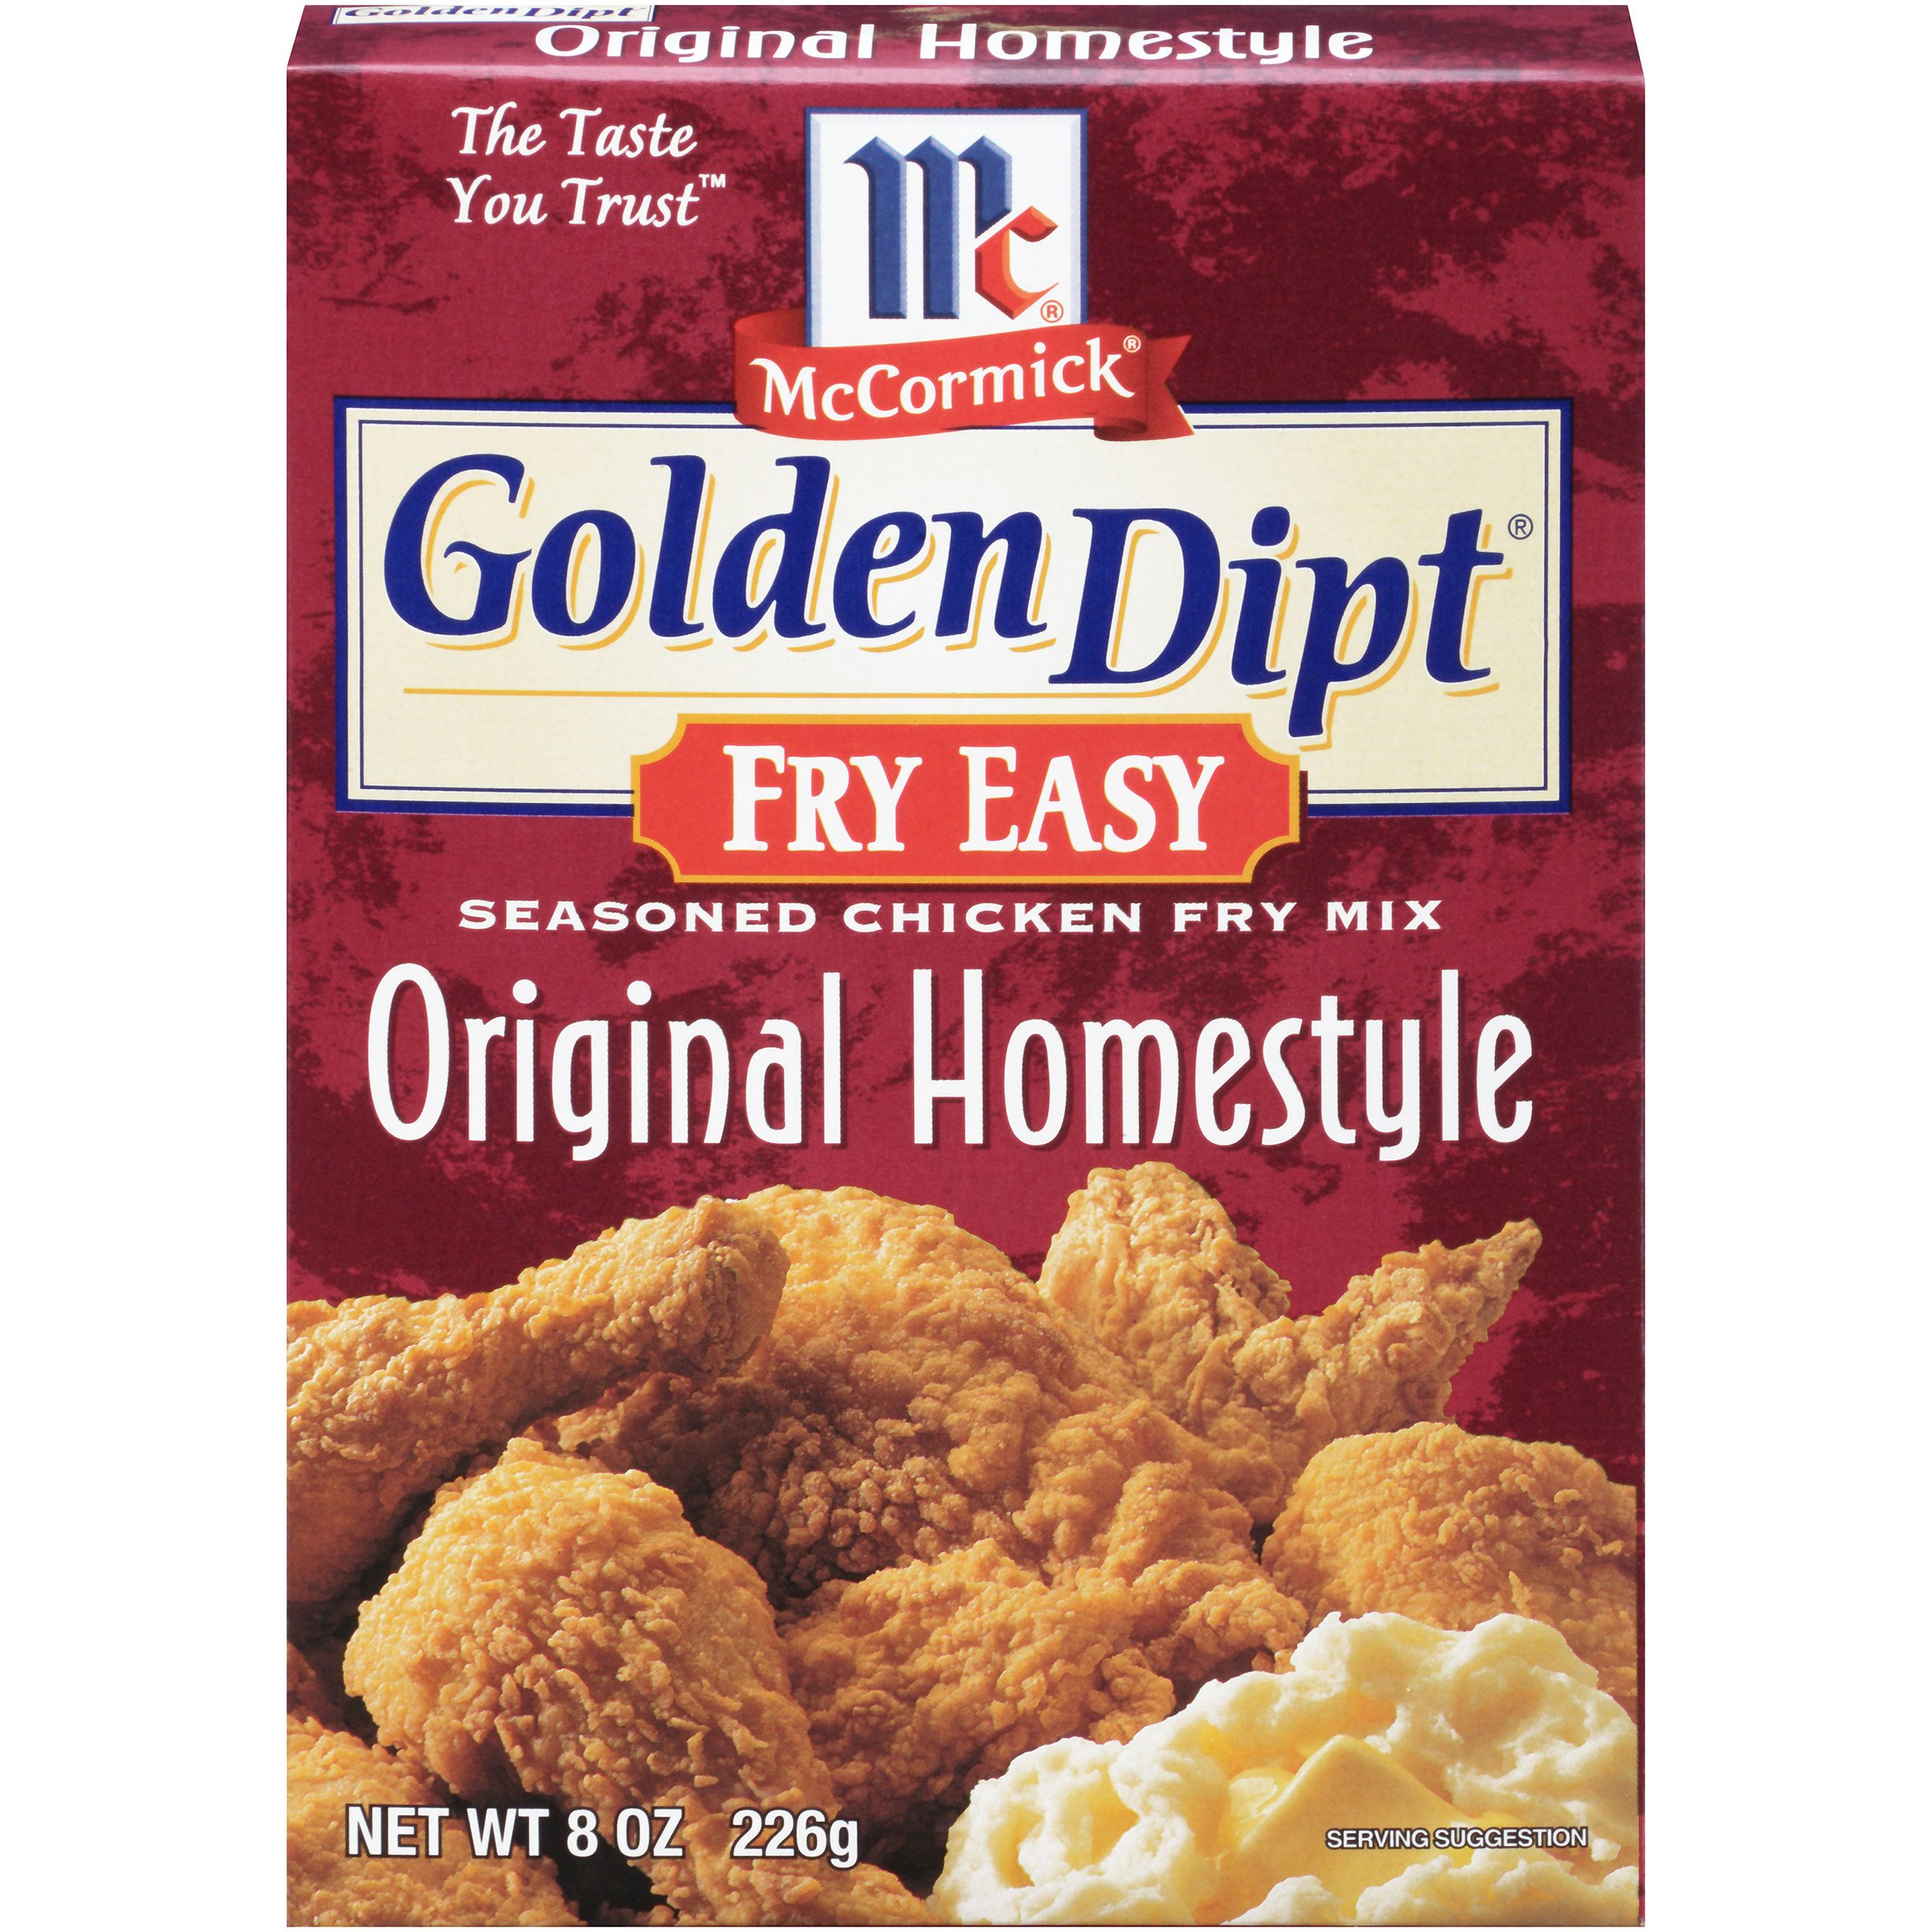 McCormick Golden Dipt Fry Easy Seasoned Chicken Fry Mix, Original Homestyle, 8-Ounce Unit (Pack of 12)